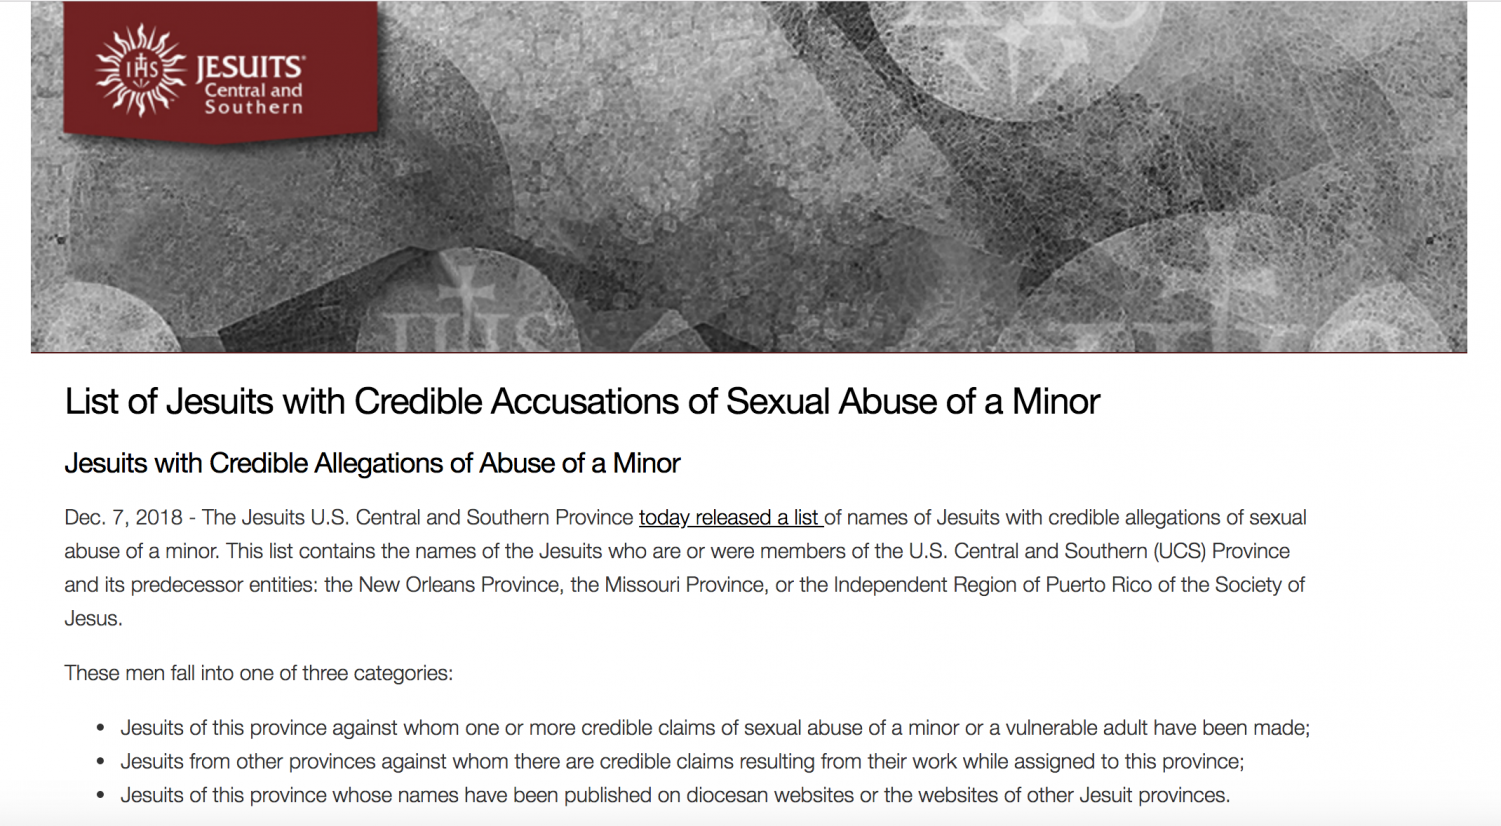 The U.S. Central and Southern Province released a list recently that names Jesuits with credible sexual abuse allegations against them. Image via the U.S. Central and Southern Province website.